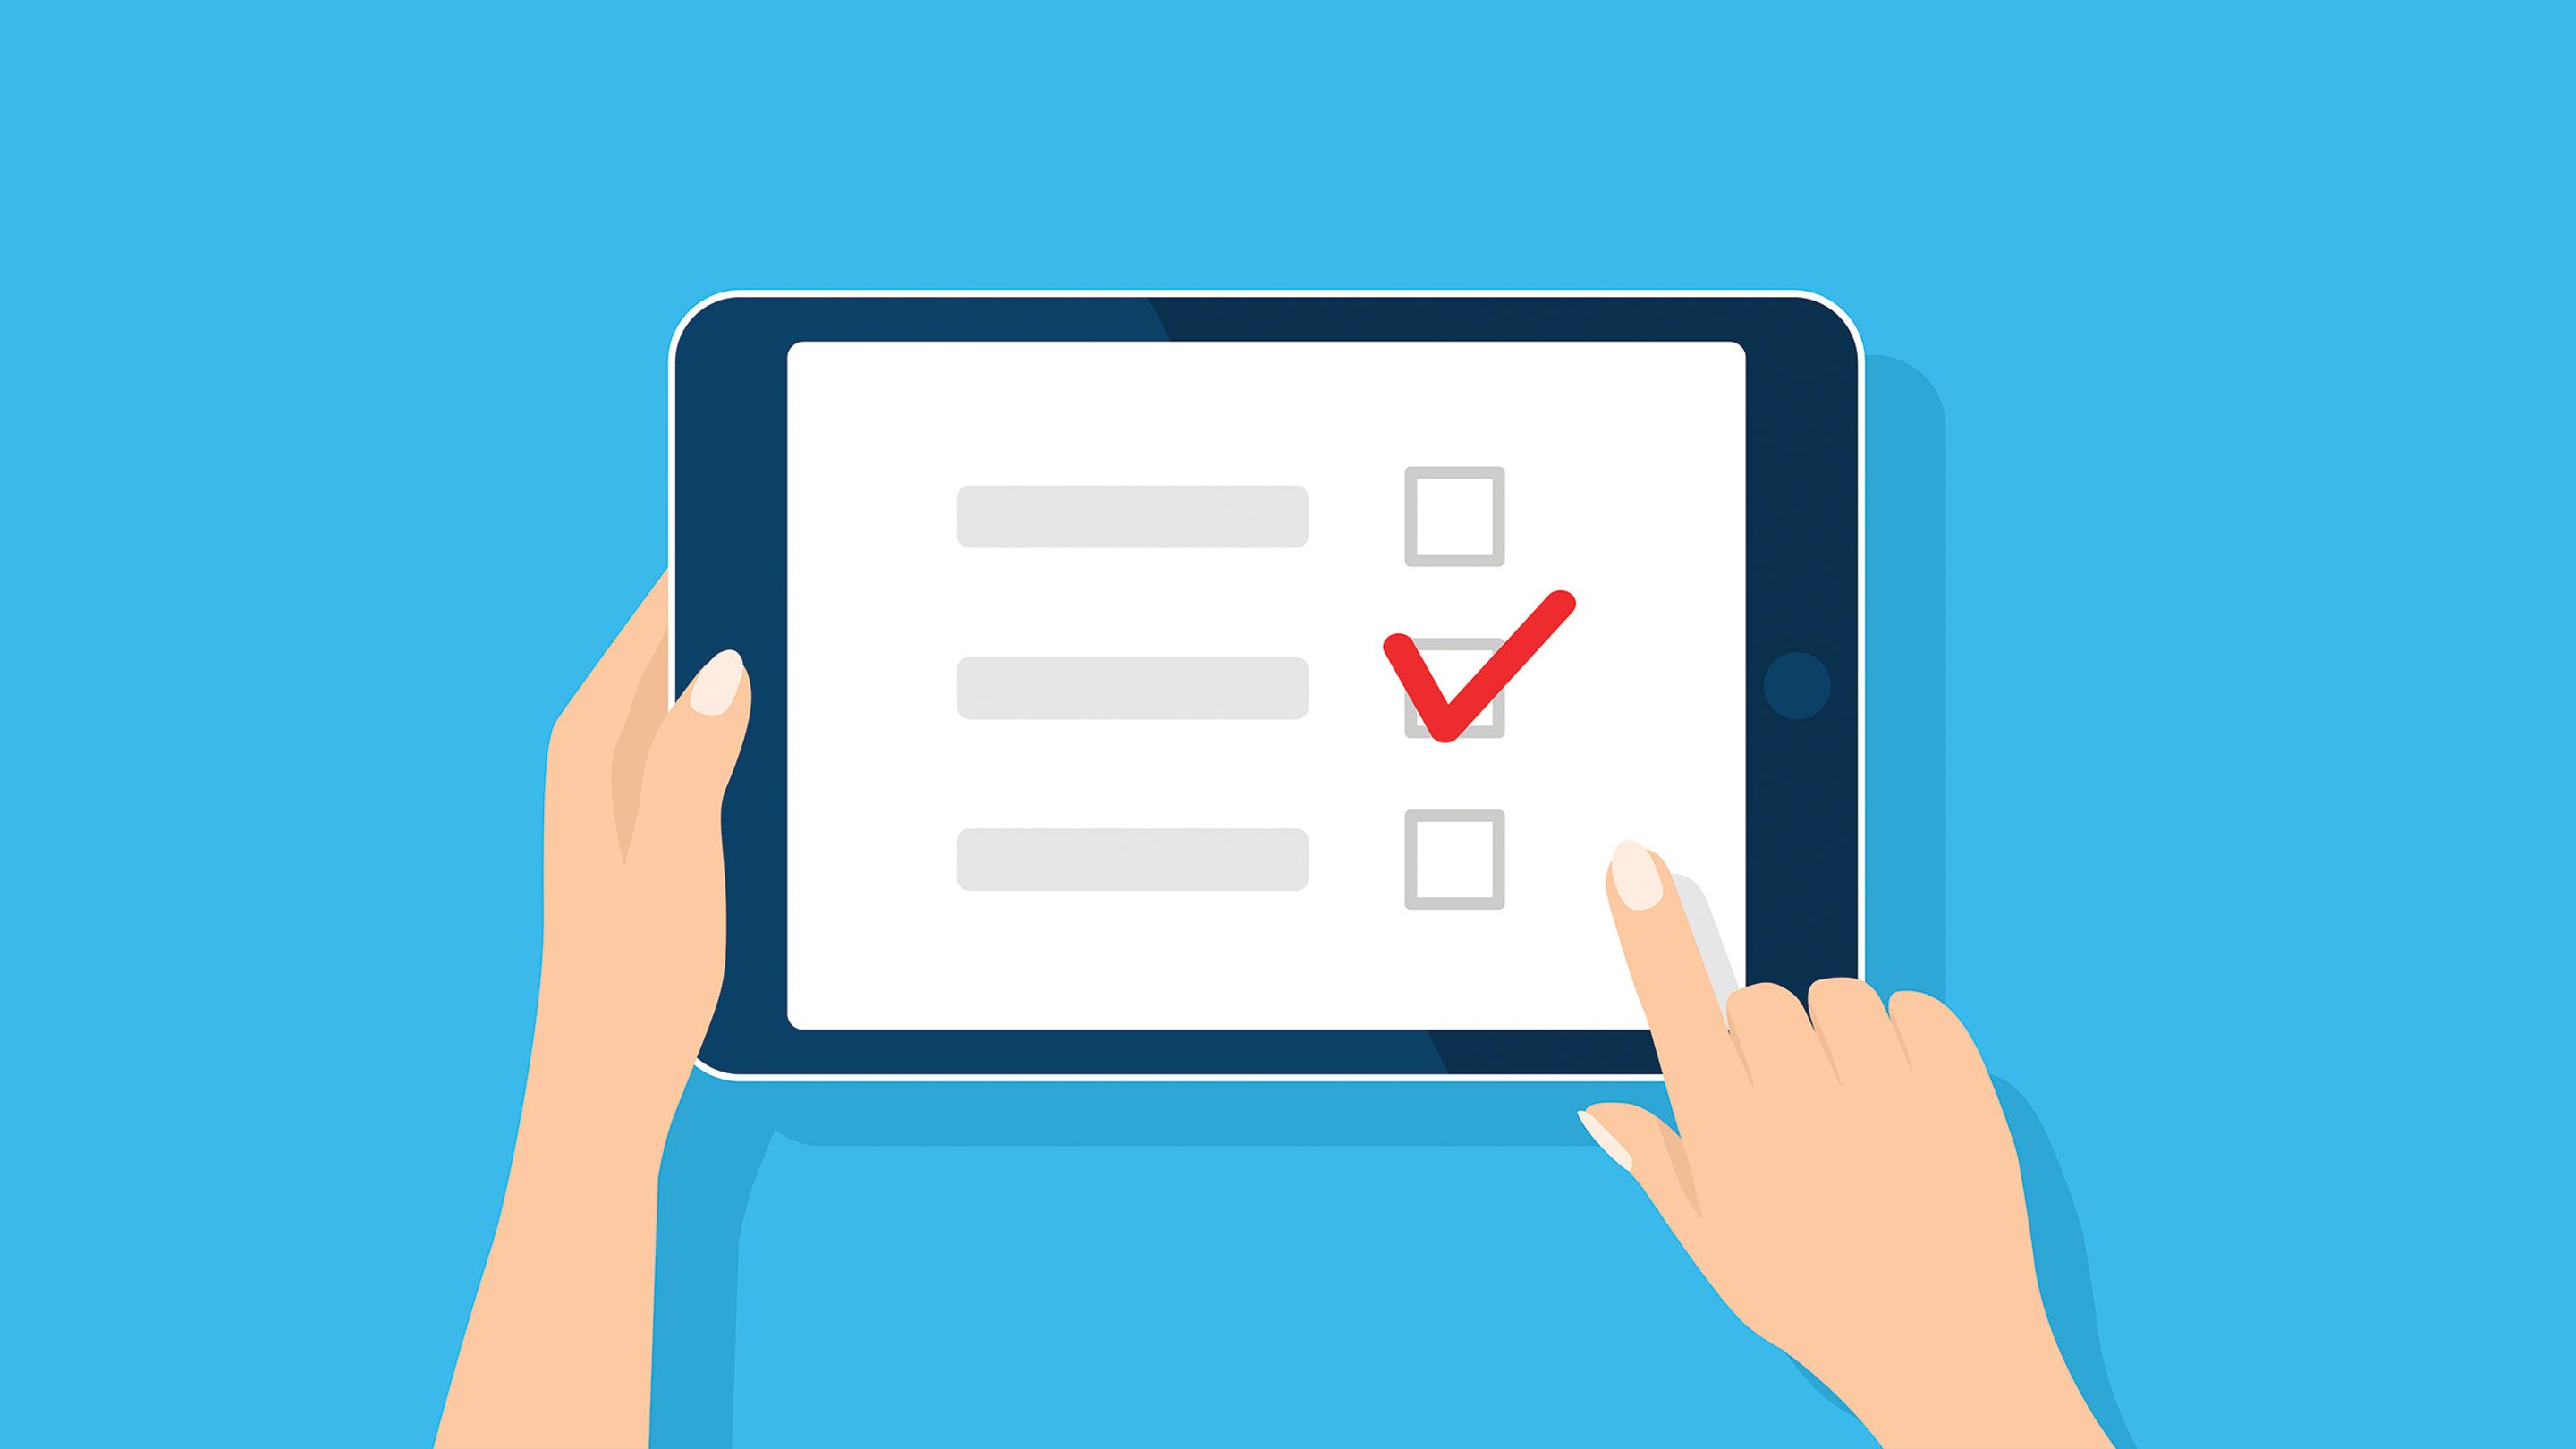 Fire Up Your Class With Student Interest Surveys